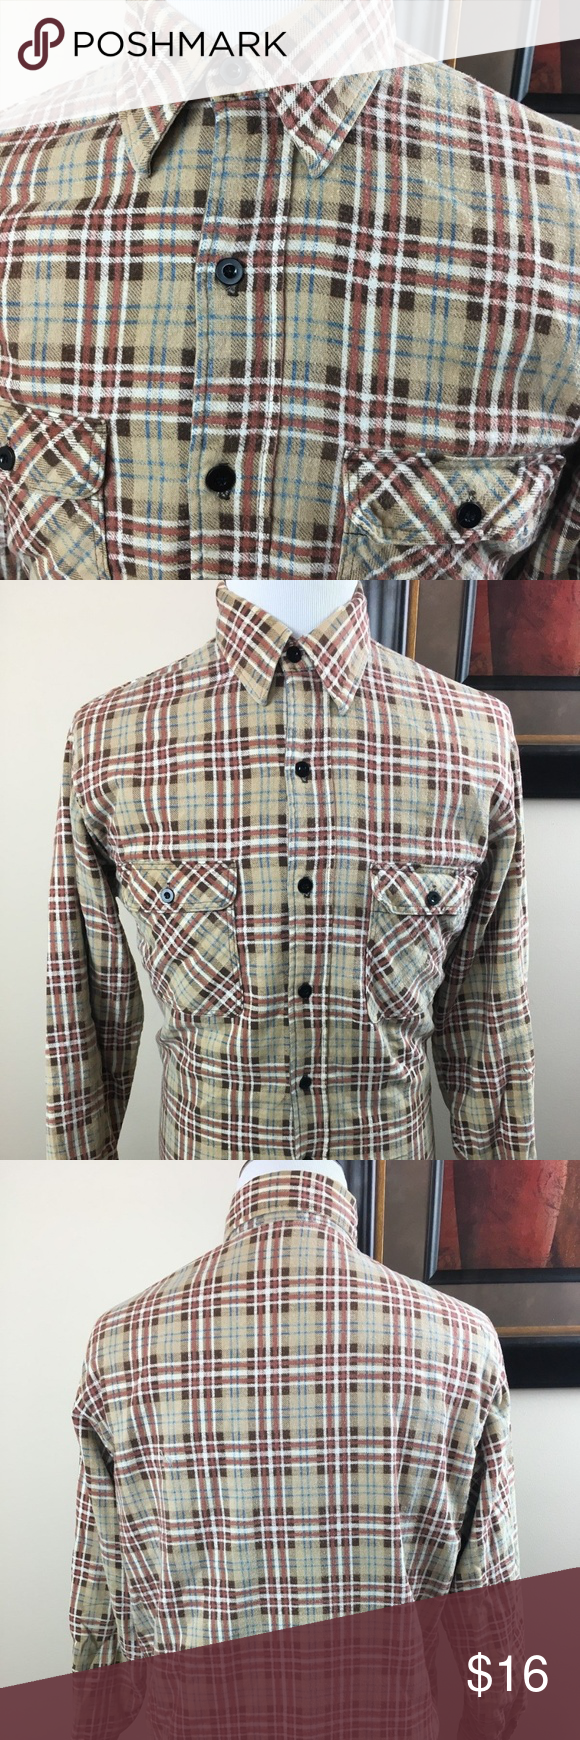 Retro flannel shirts  JCPenney Mens Shop Vtg Plaid Quilted Flannel Shirt  My Posh Picks